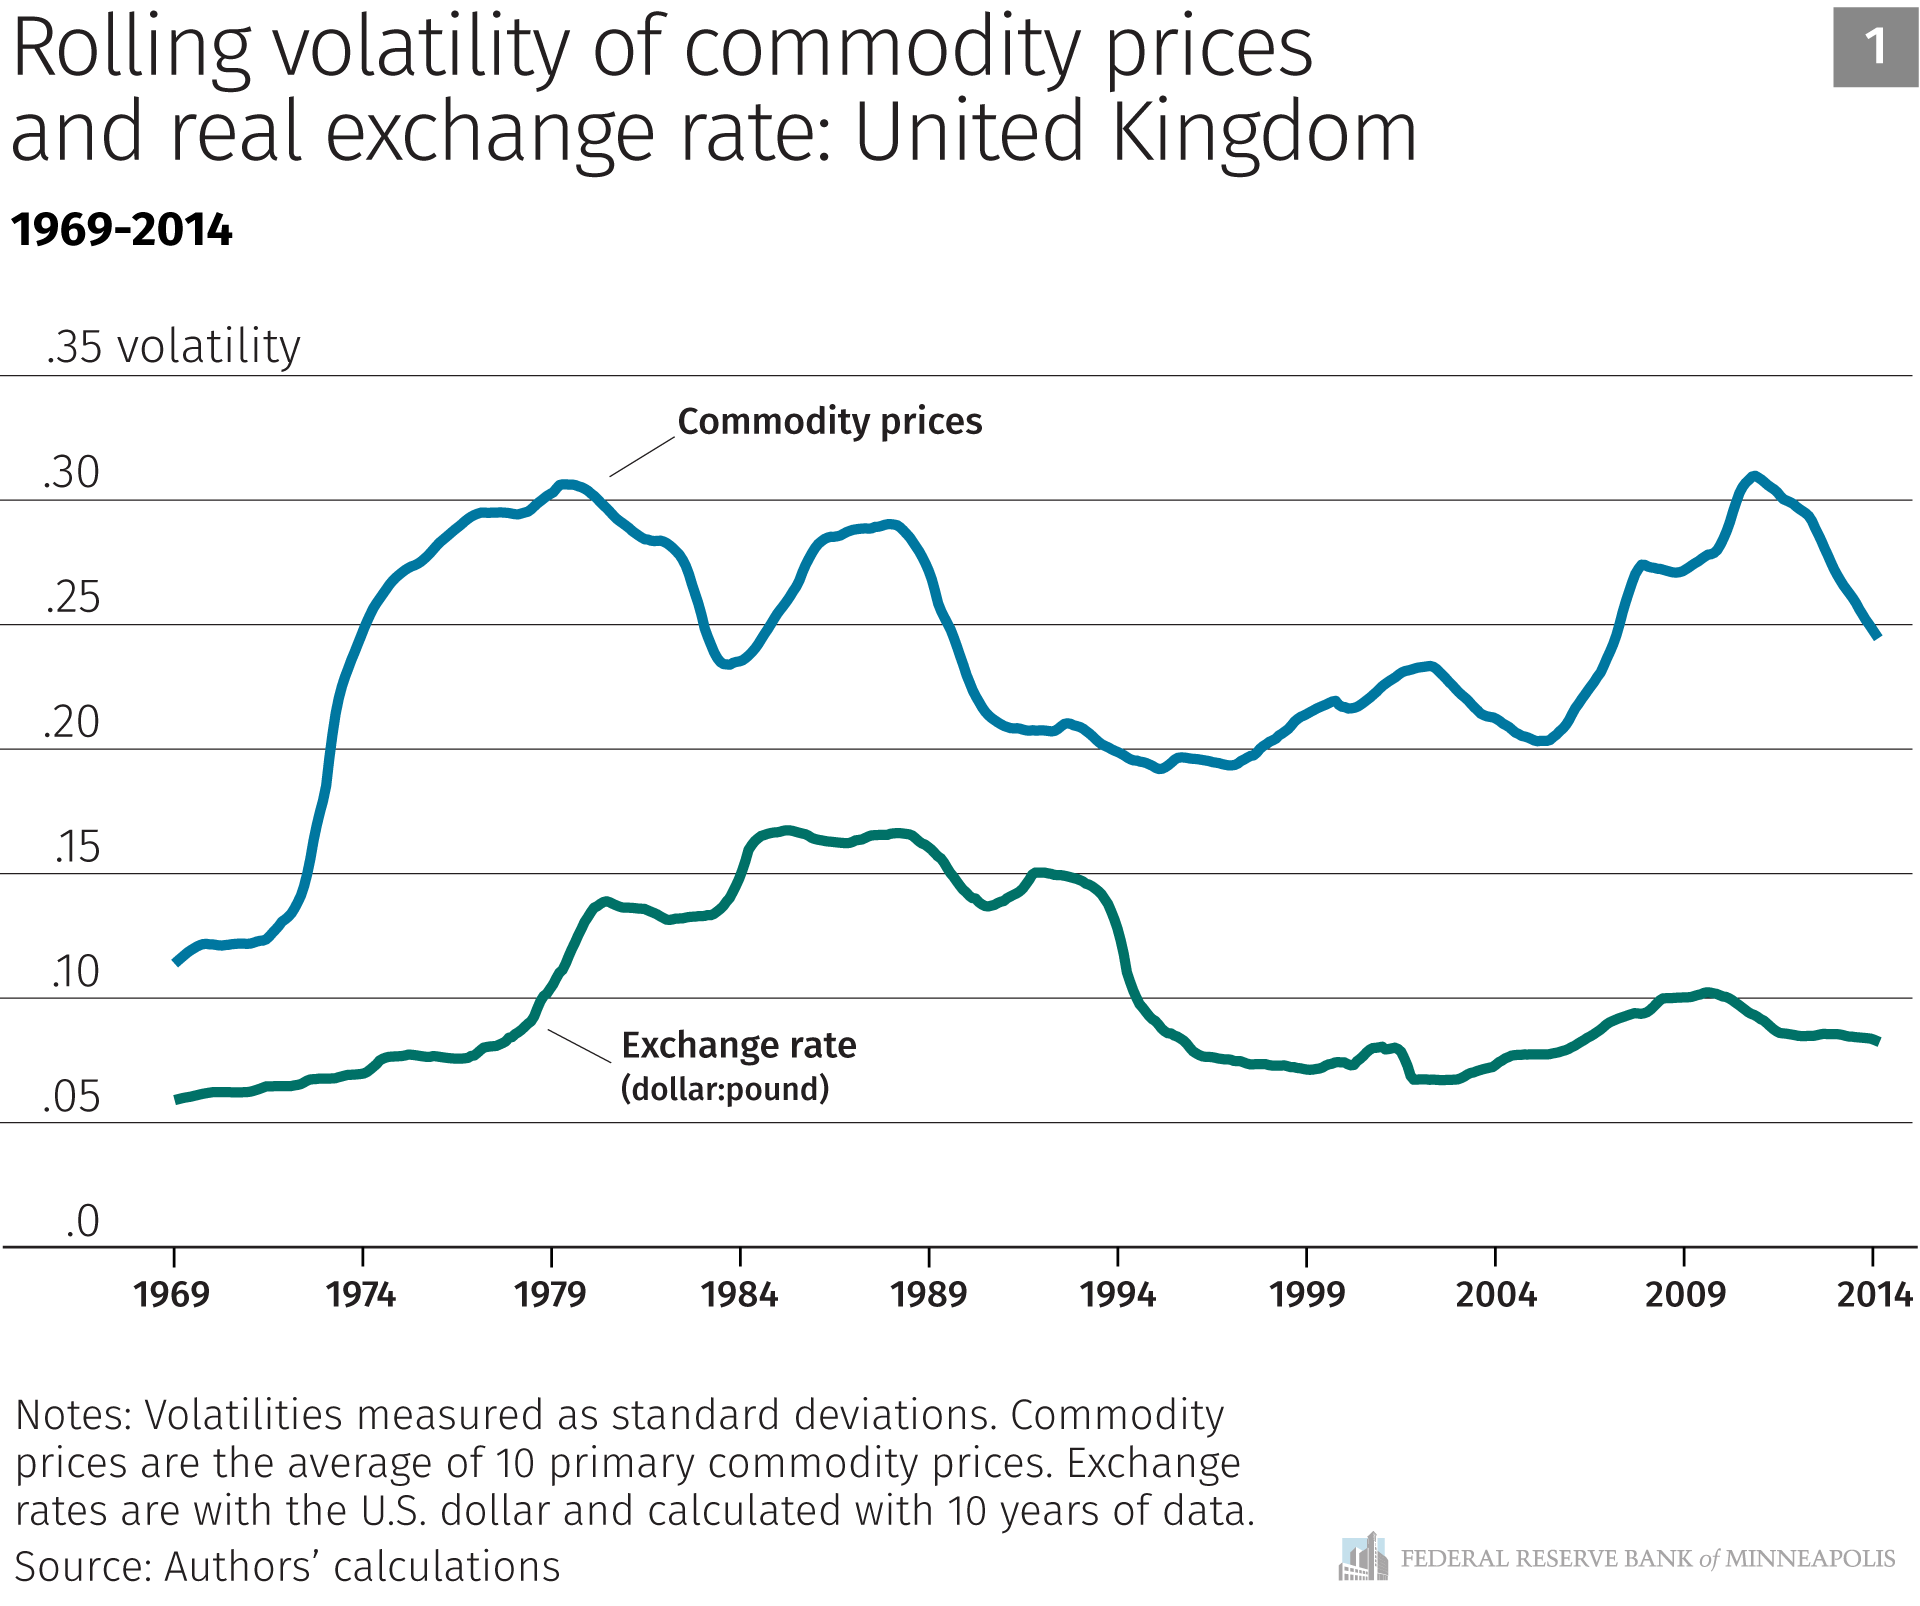 Rolling volatility of commodity prices and real exchange rate: United Kingdom